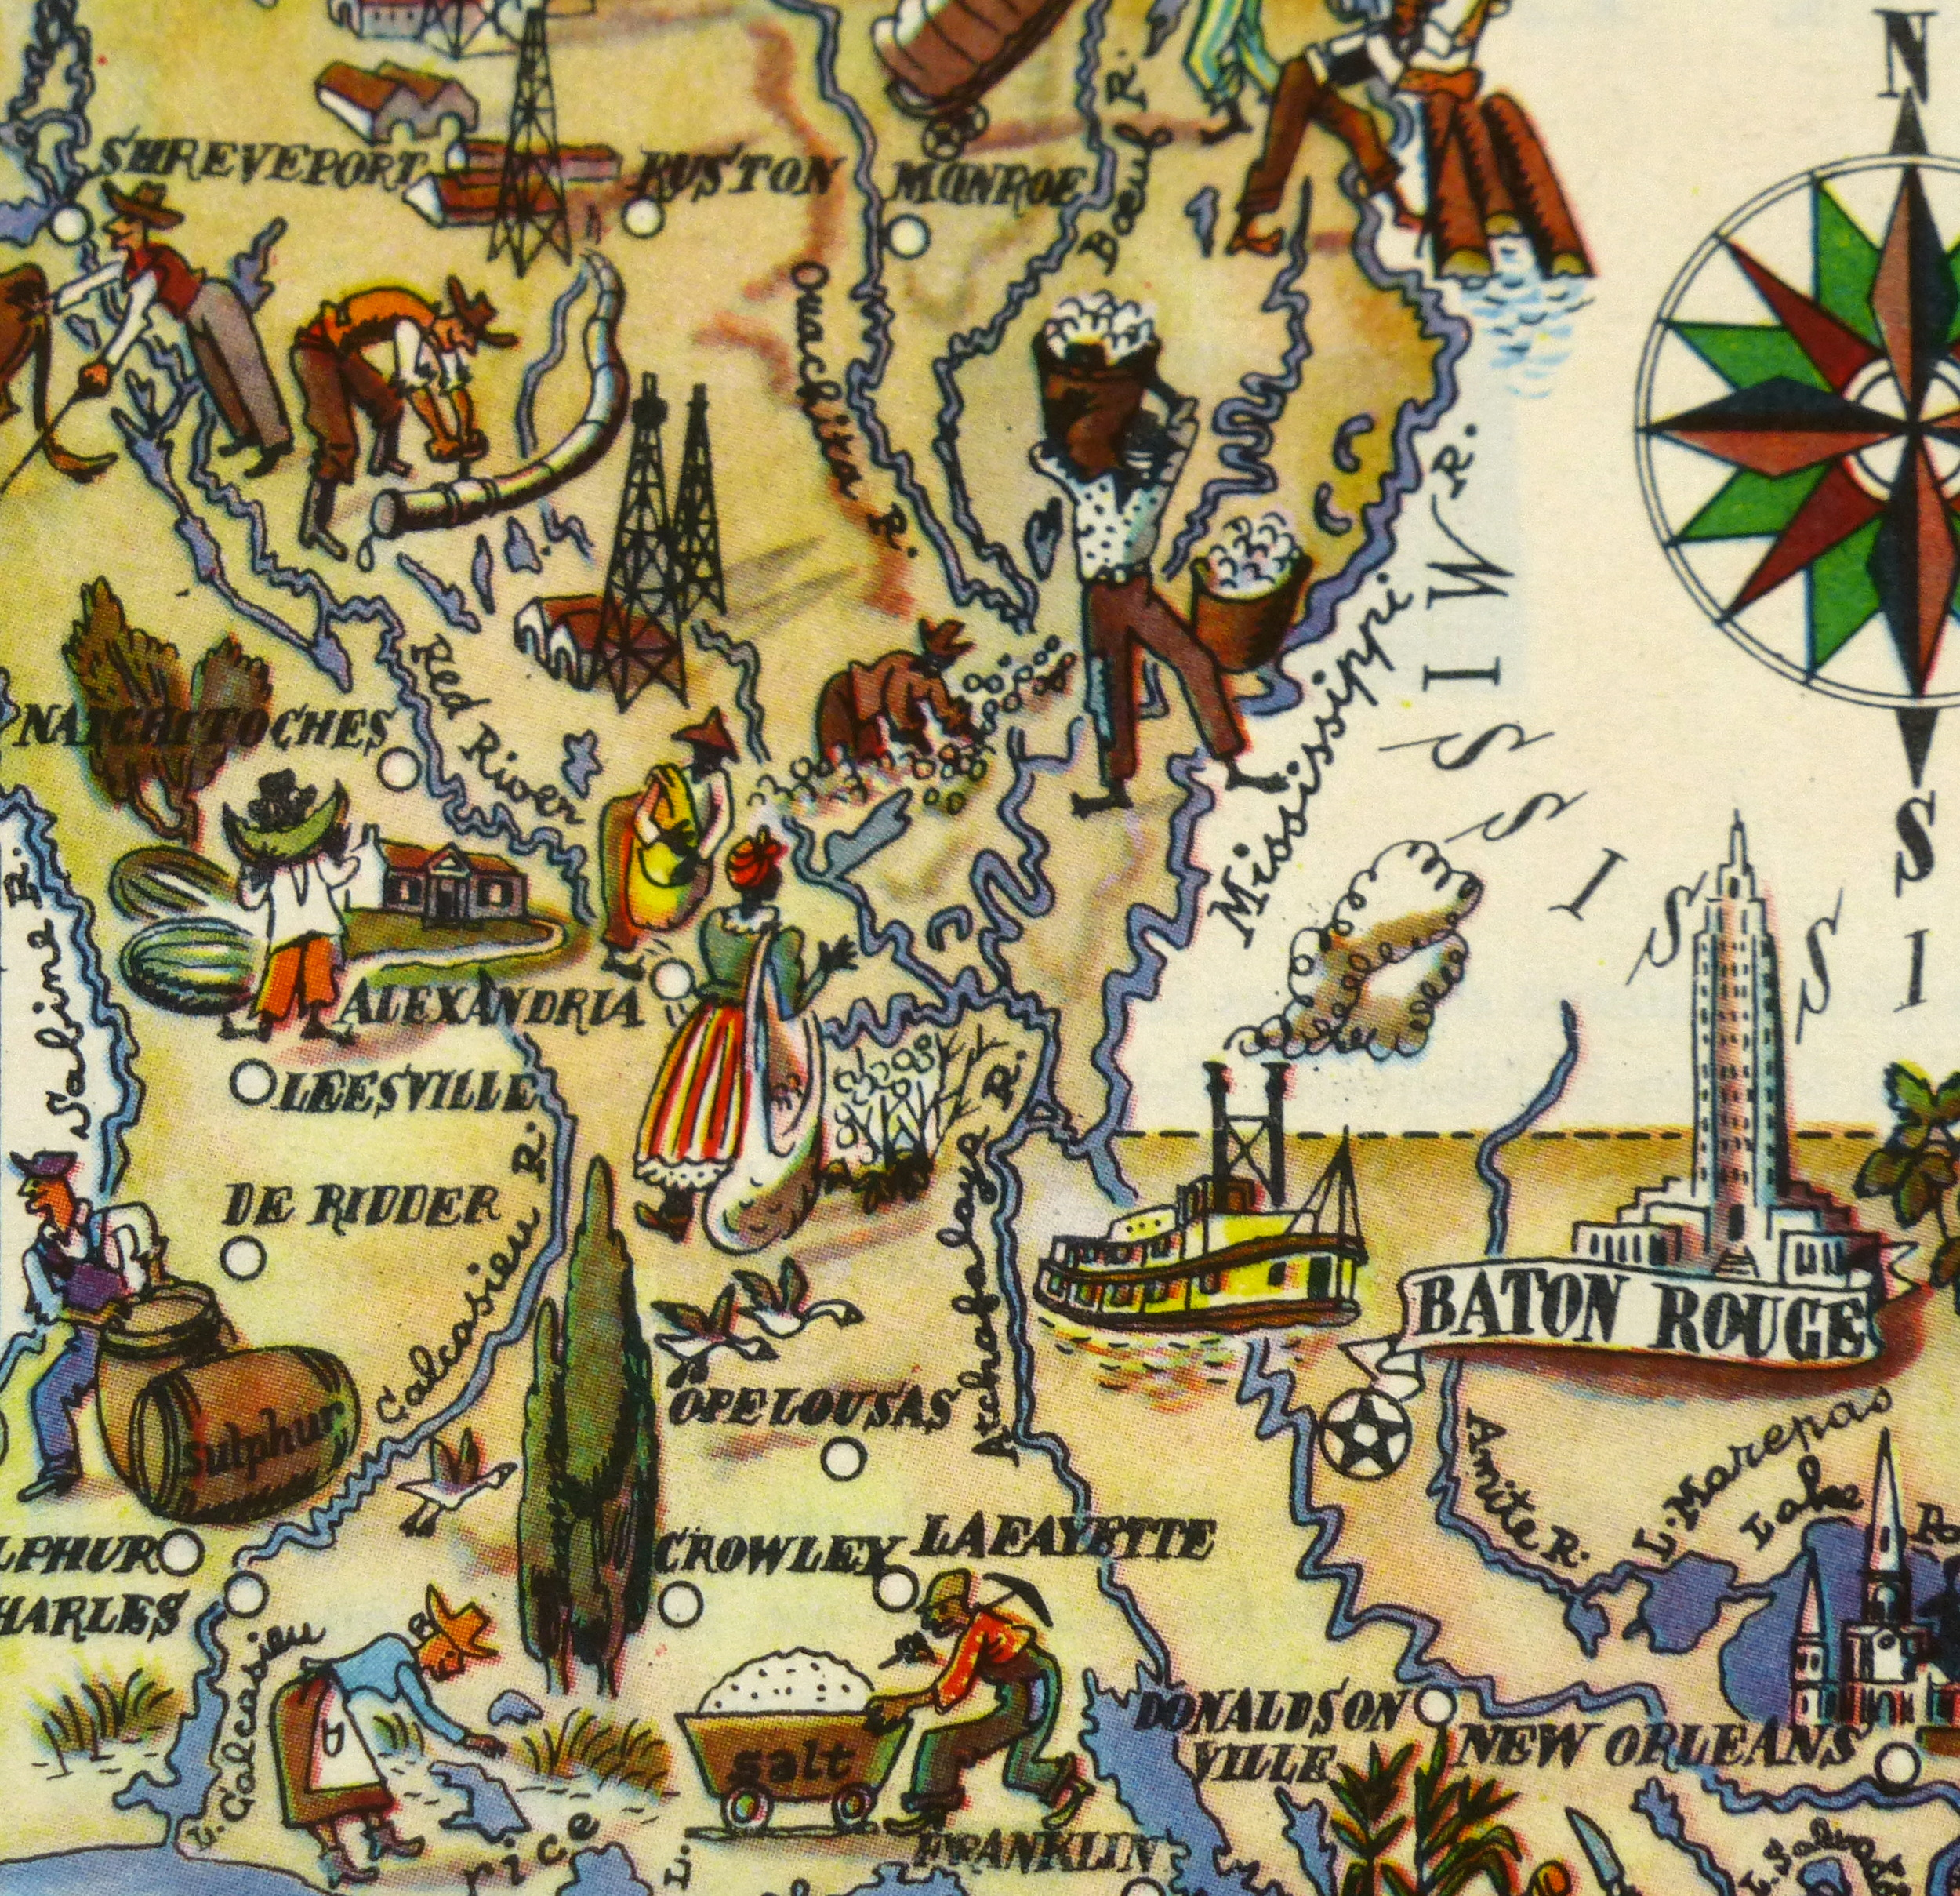 Louisiana Pictorial Map, 1946-detail-6239K